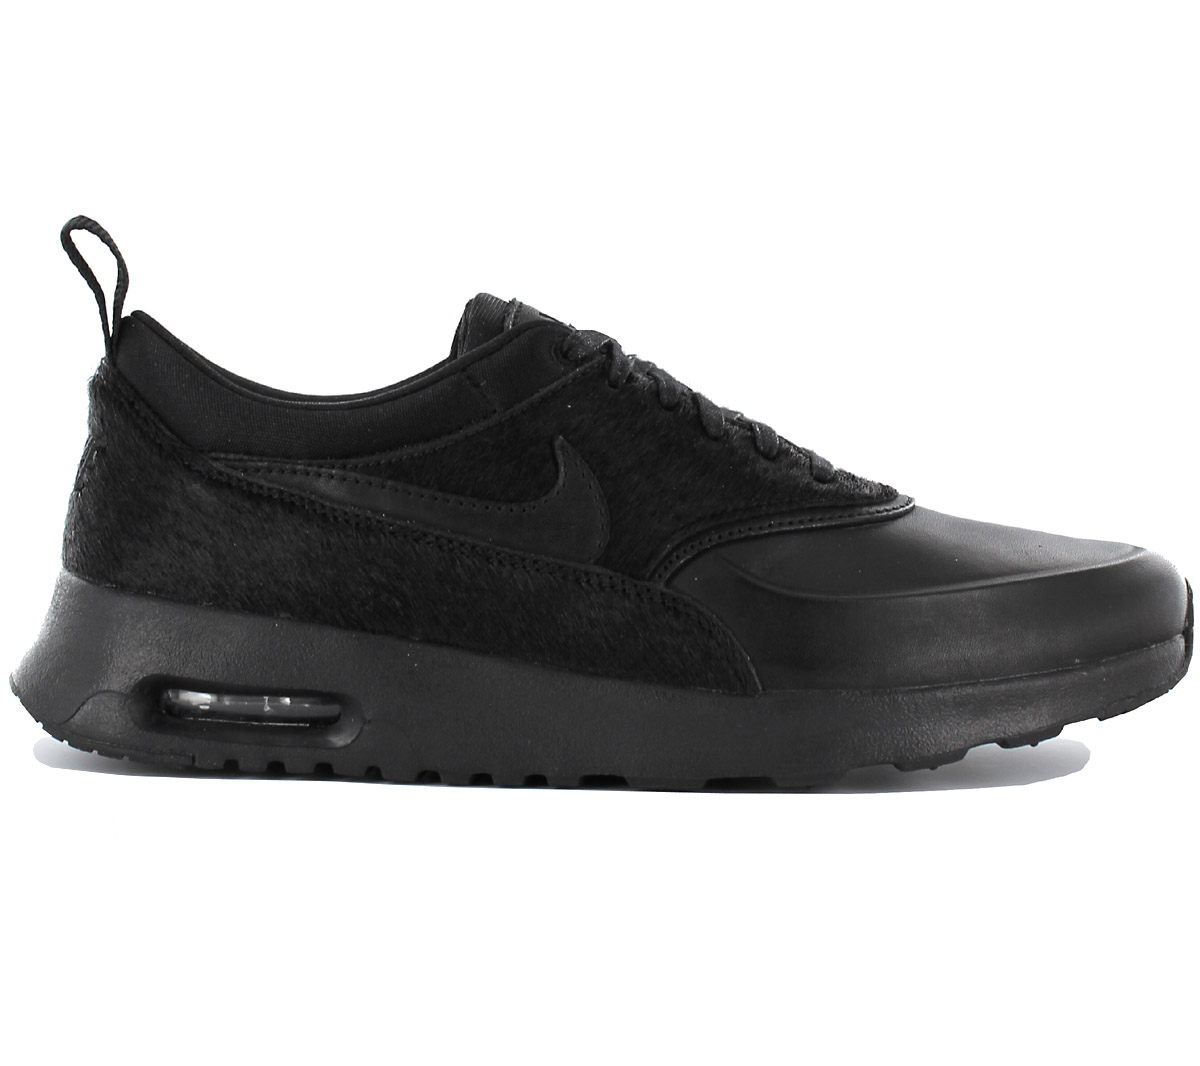 wholesale dealer de762 66798 Nike Air Max Thea Premium Ladies Sneaker Shoes Leather Black 616723 ...